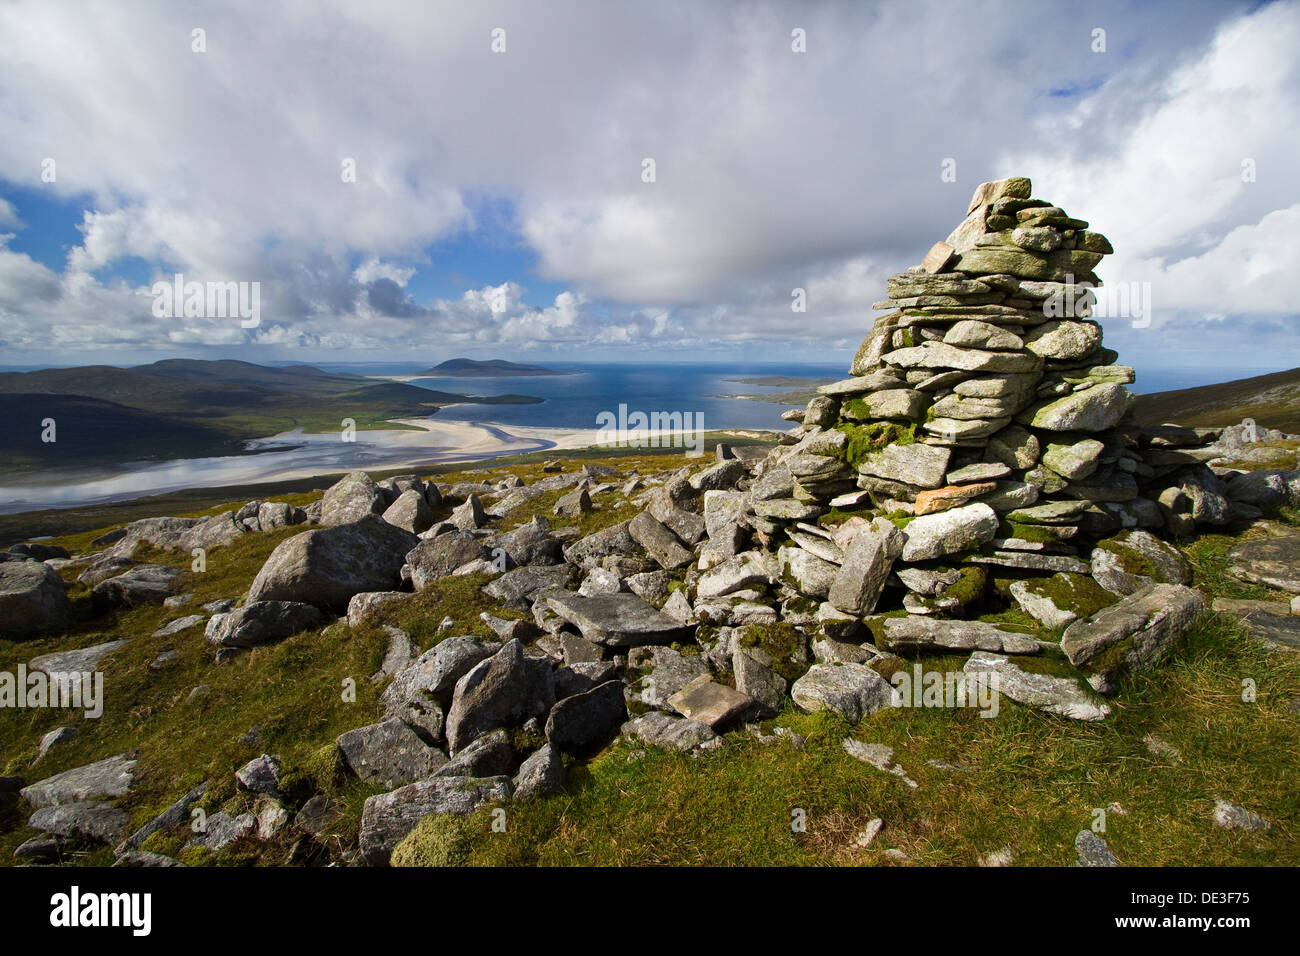 The summit of Beinn Losgaintir on the Isle of Harris, Scotland - Stock Image